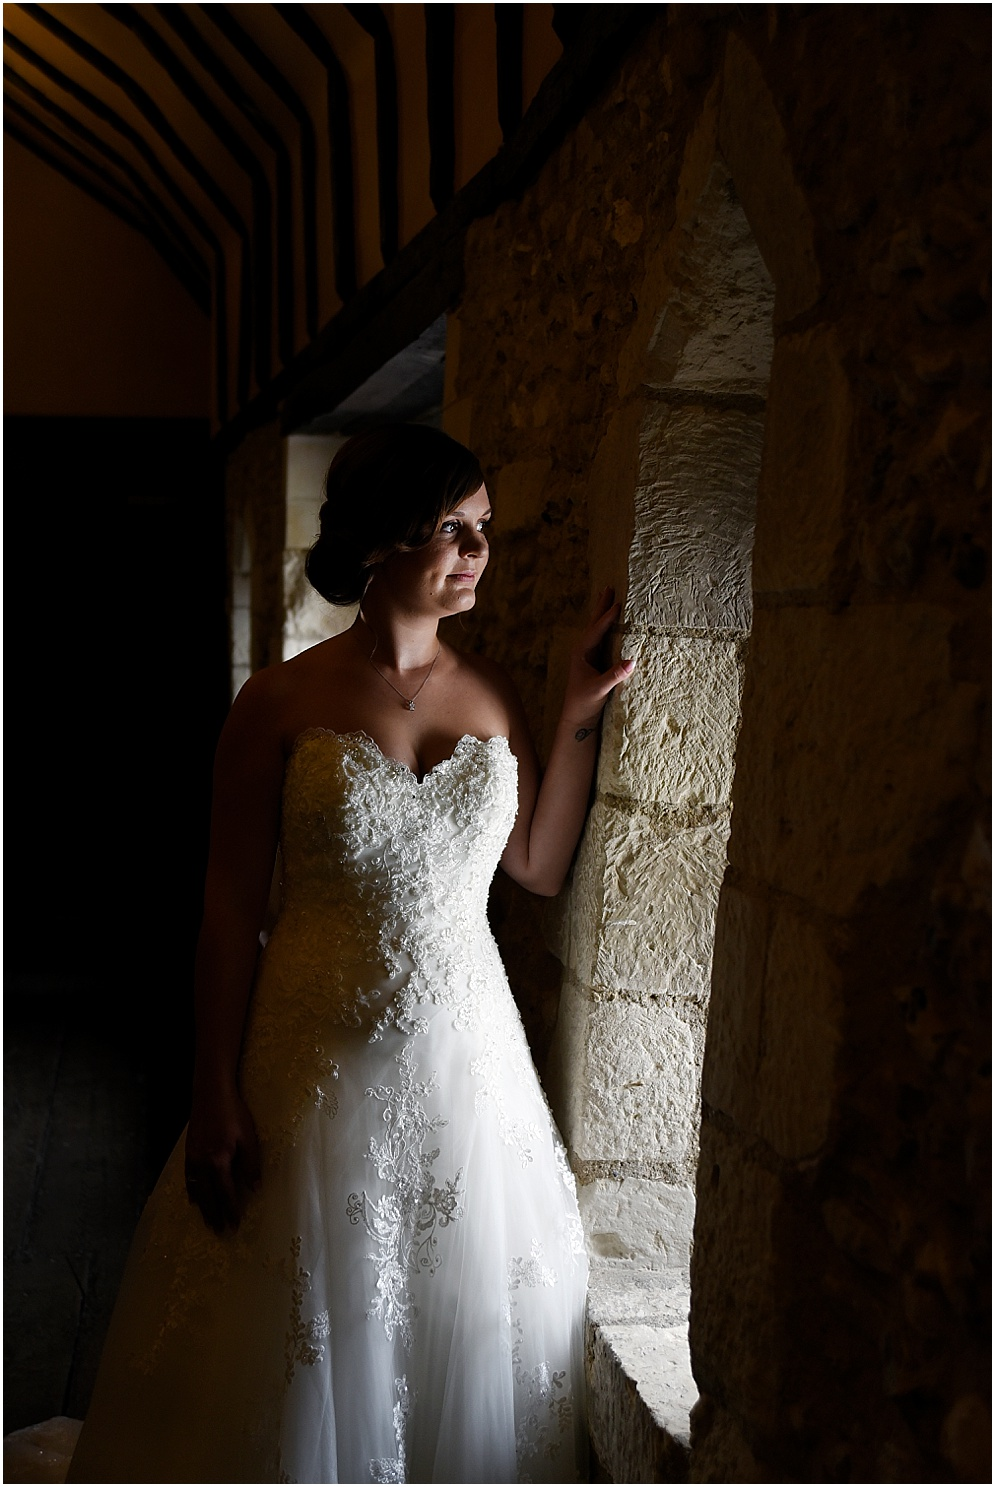 Bride pictured in her dress on her wedding day morning. Hitchin Priory wedding photography.